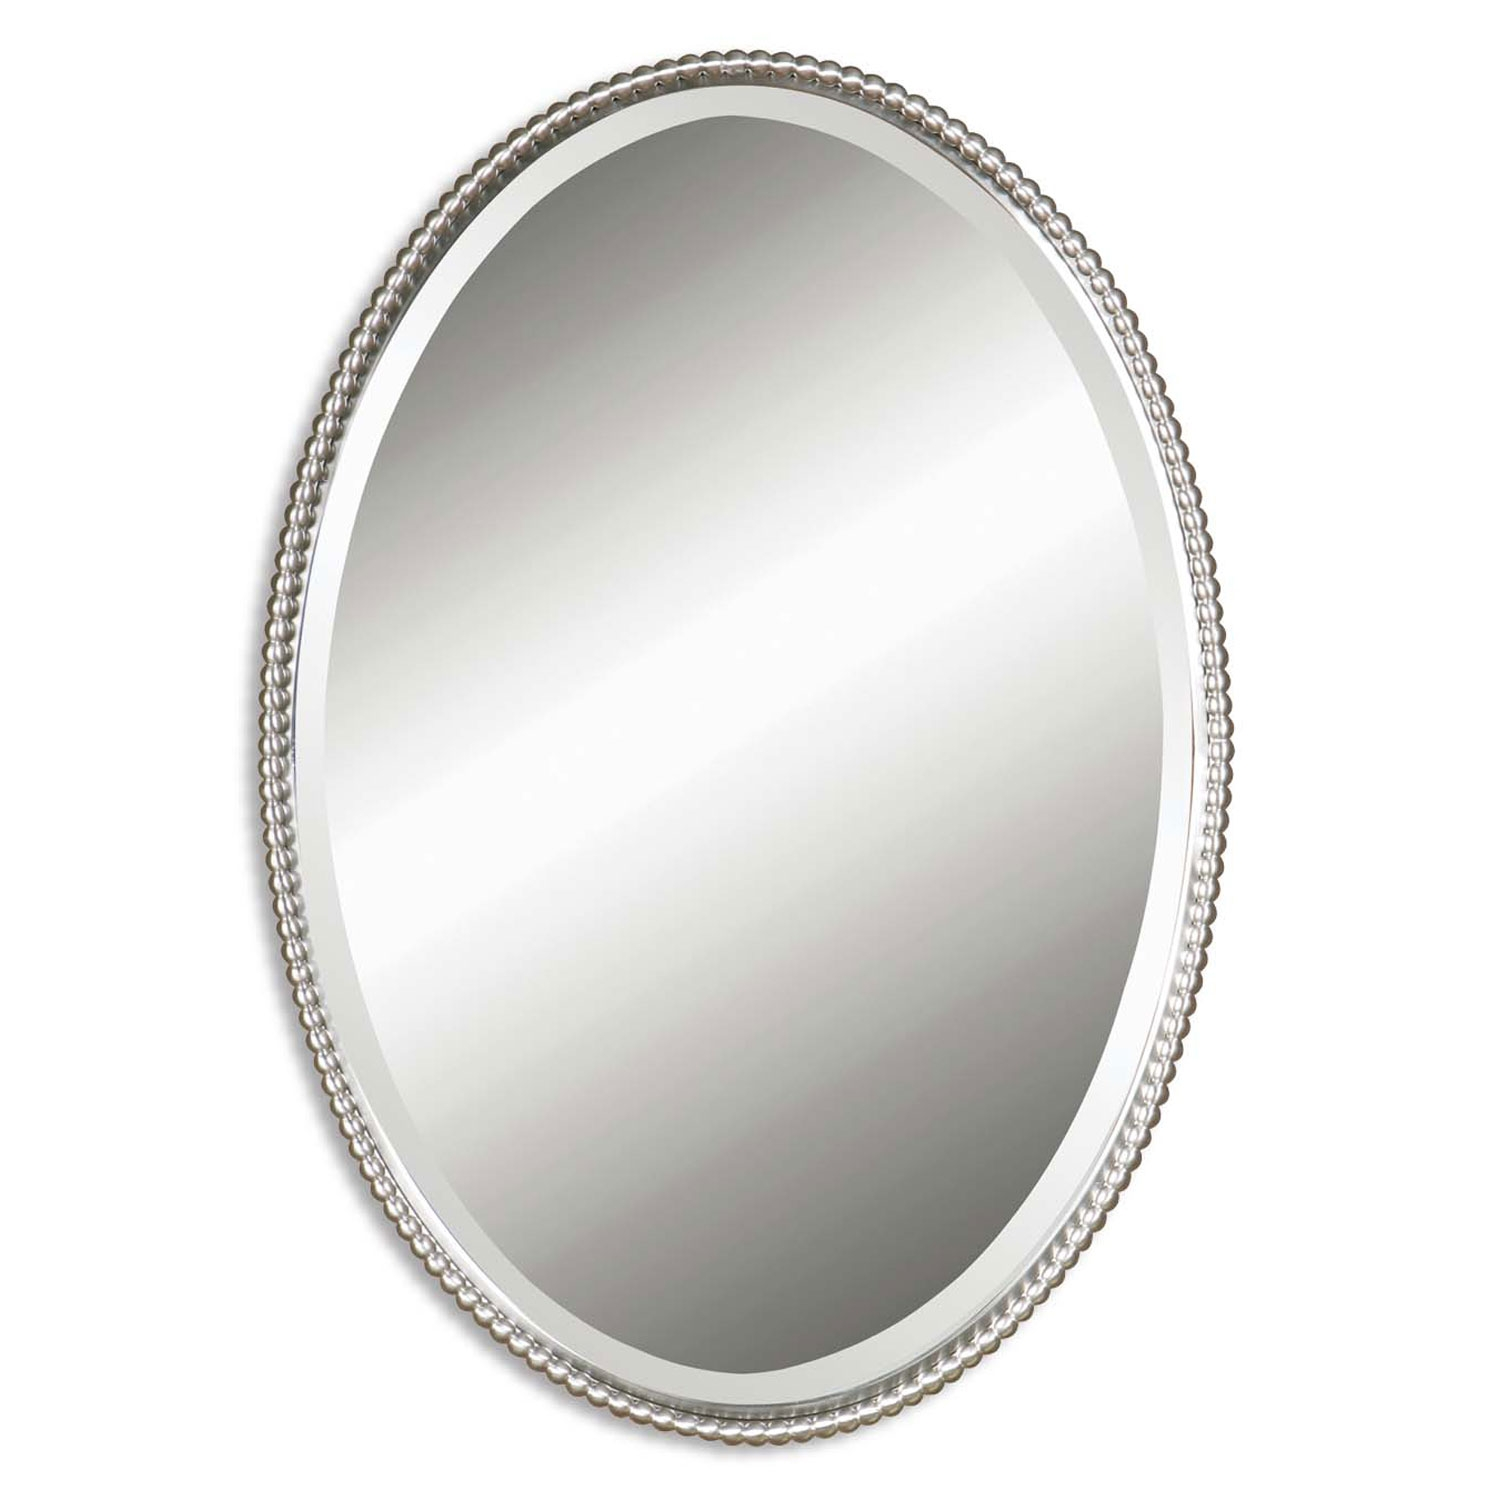 Sherise Brushed Nickel Oval Mirror Uttermost Oval Mirrors Home Decor For Silver Oval Mirror (Image 10 of 15)